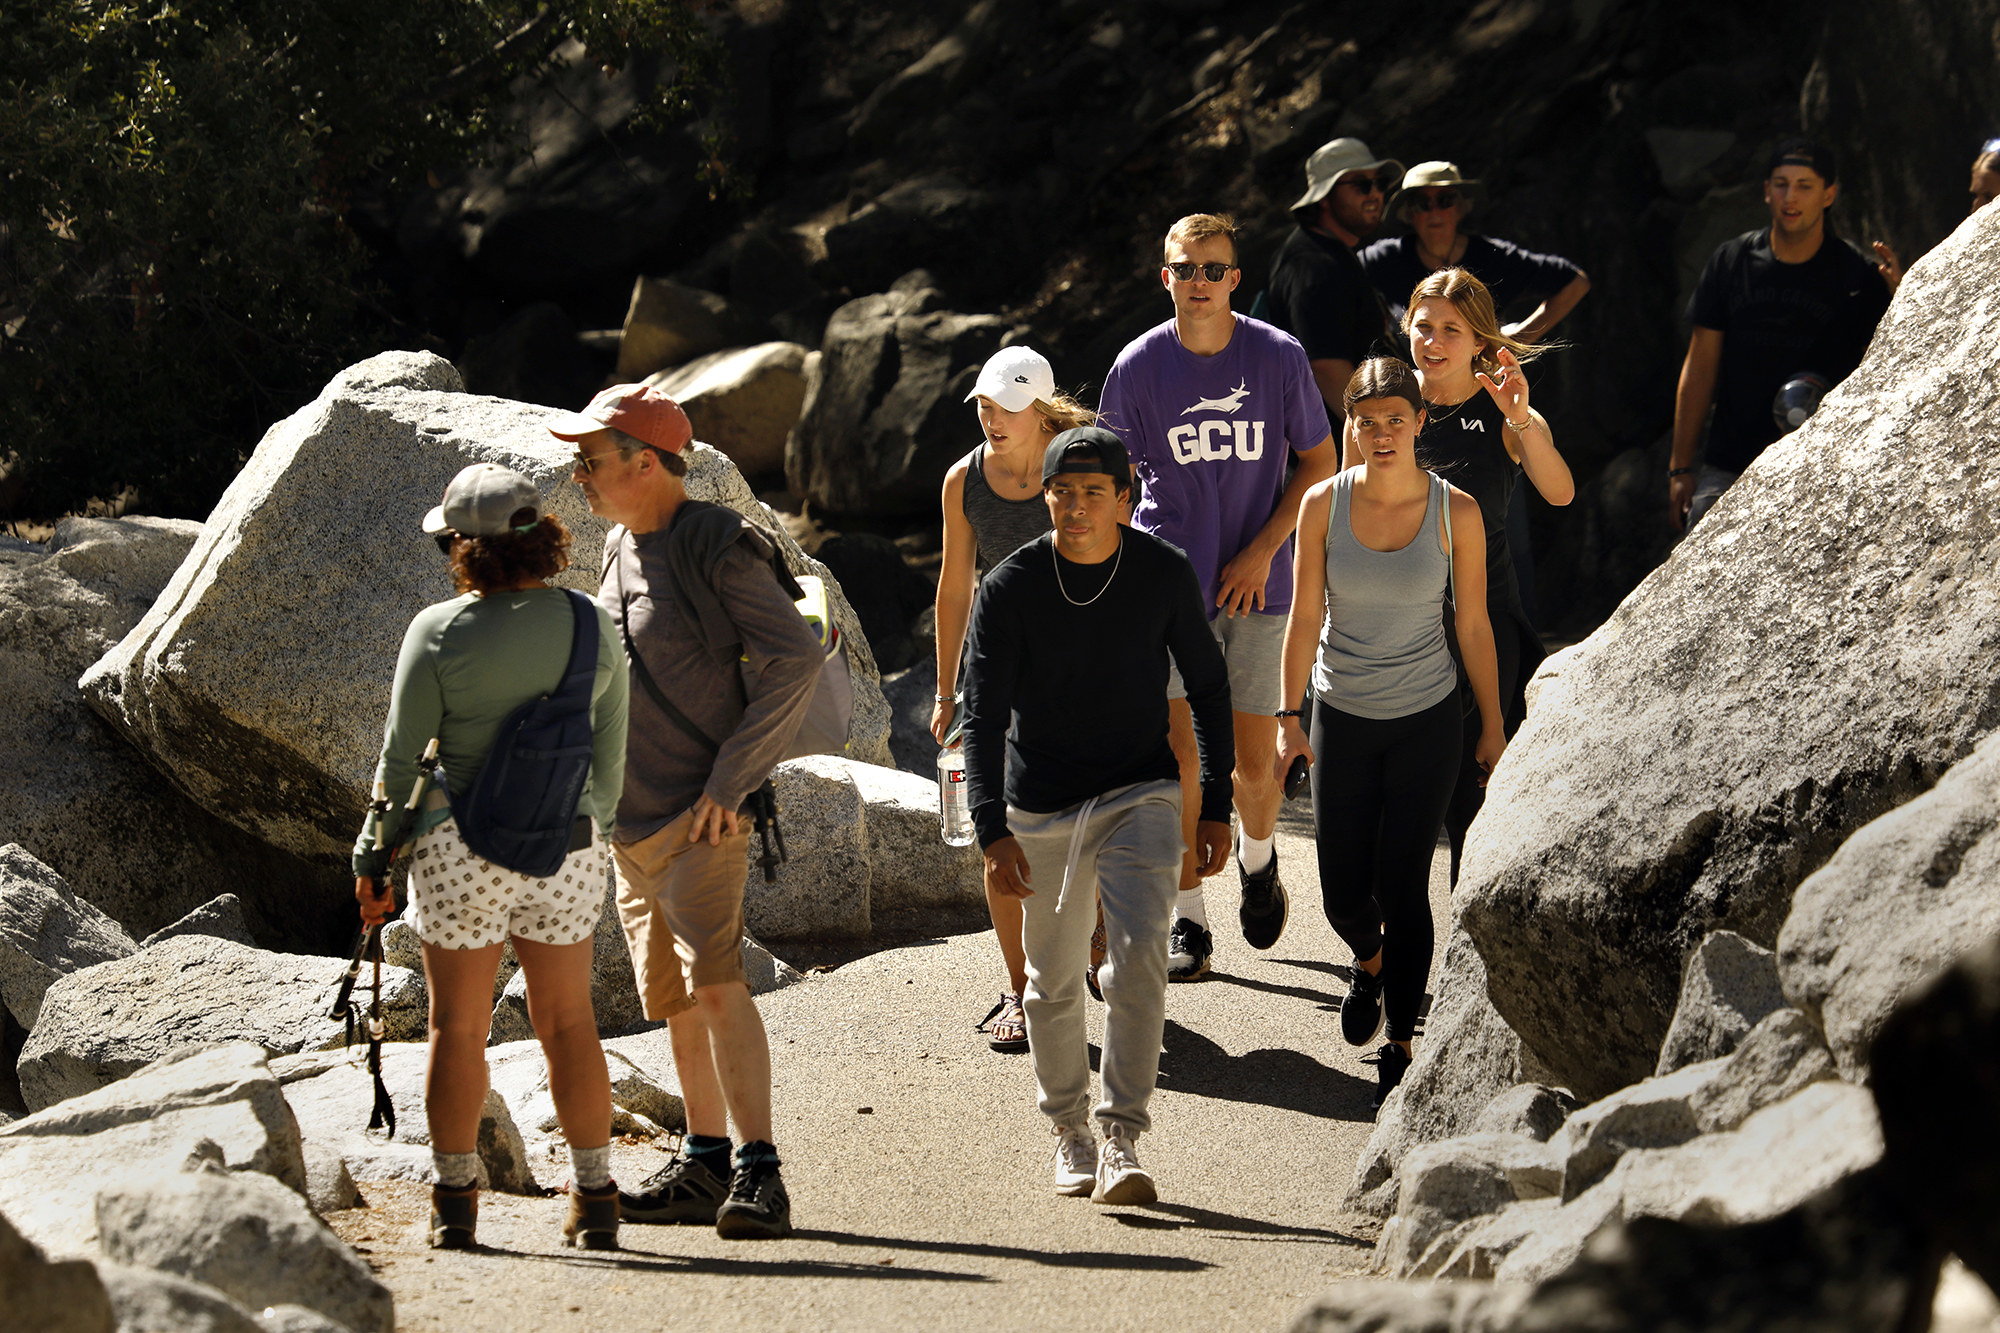 Groups of people, most unmasked, walking up a hiking trail in Yosemite National Park